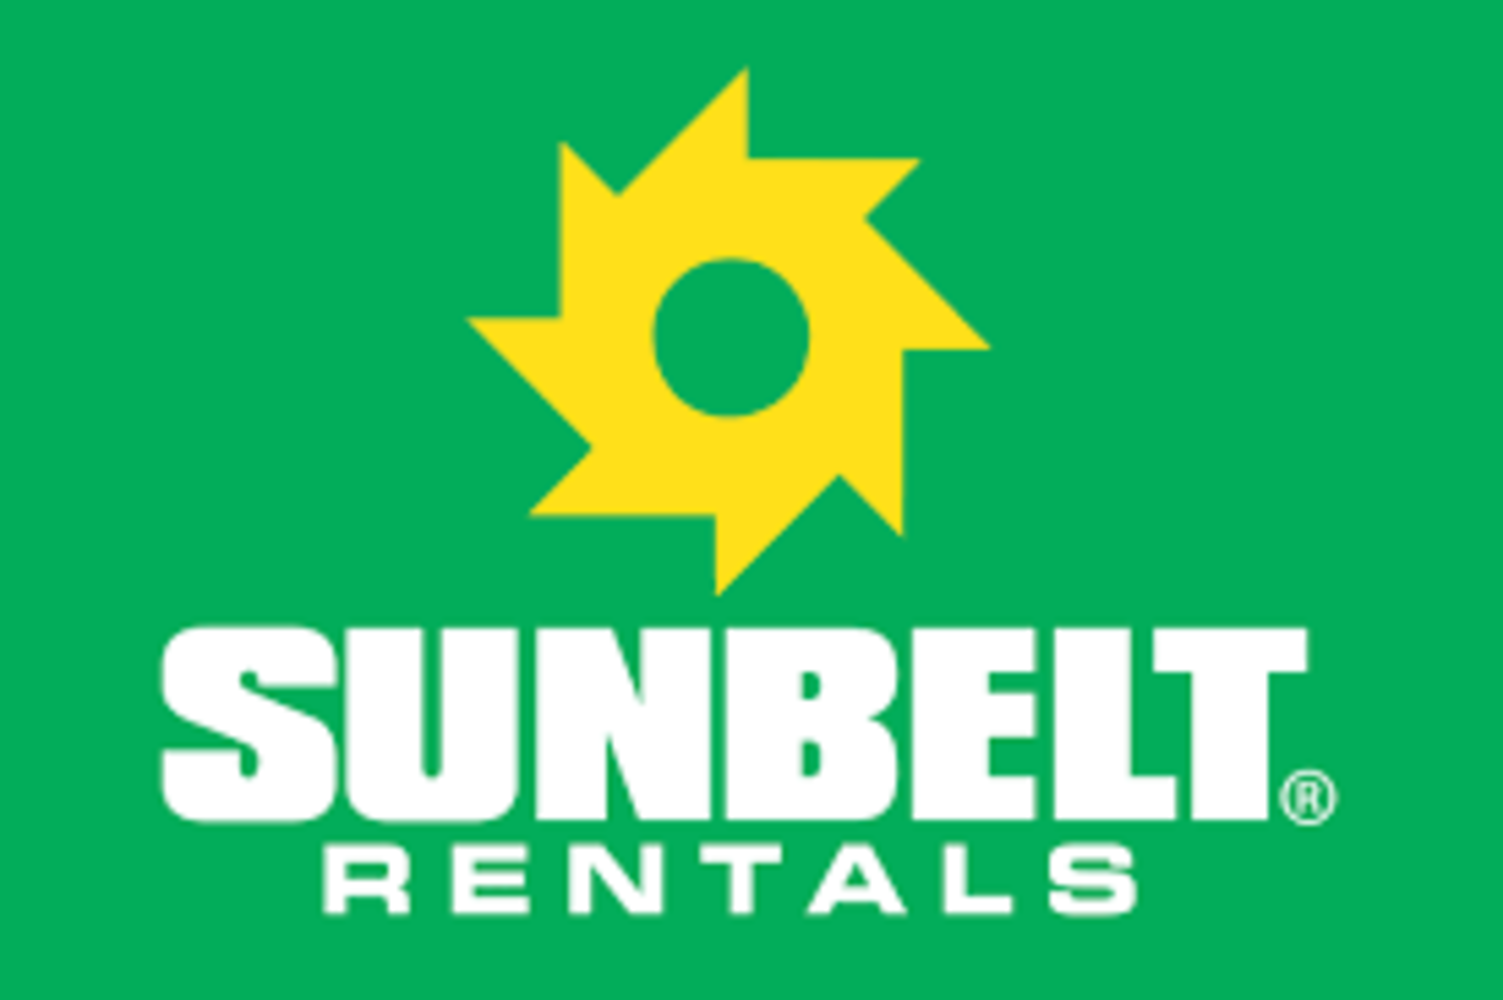 Exclusive Auction on behalf of Retained Client Sunbelt Rentals One of the Worlds Largest Rental Companies Variety of Lifting Gear & Small Tools